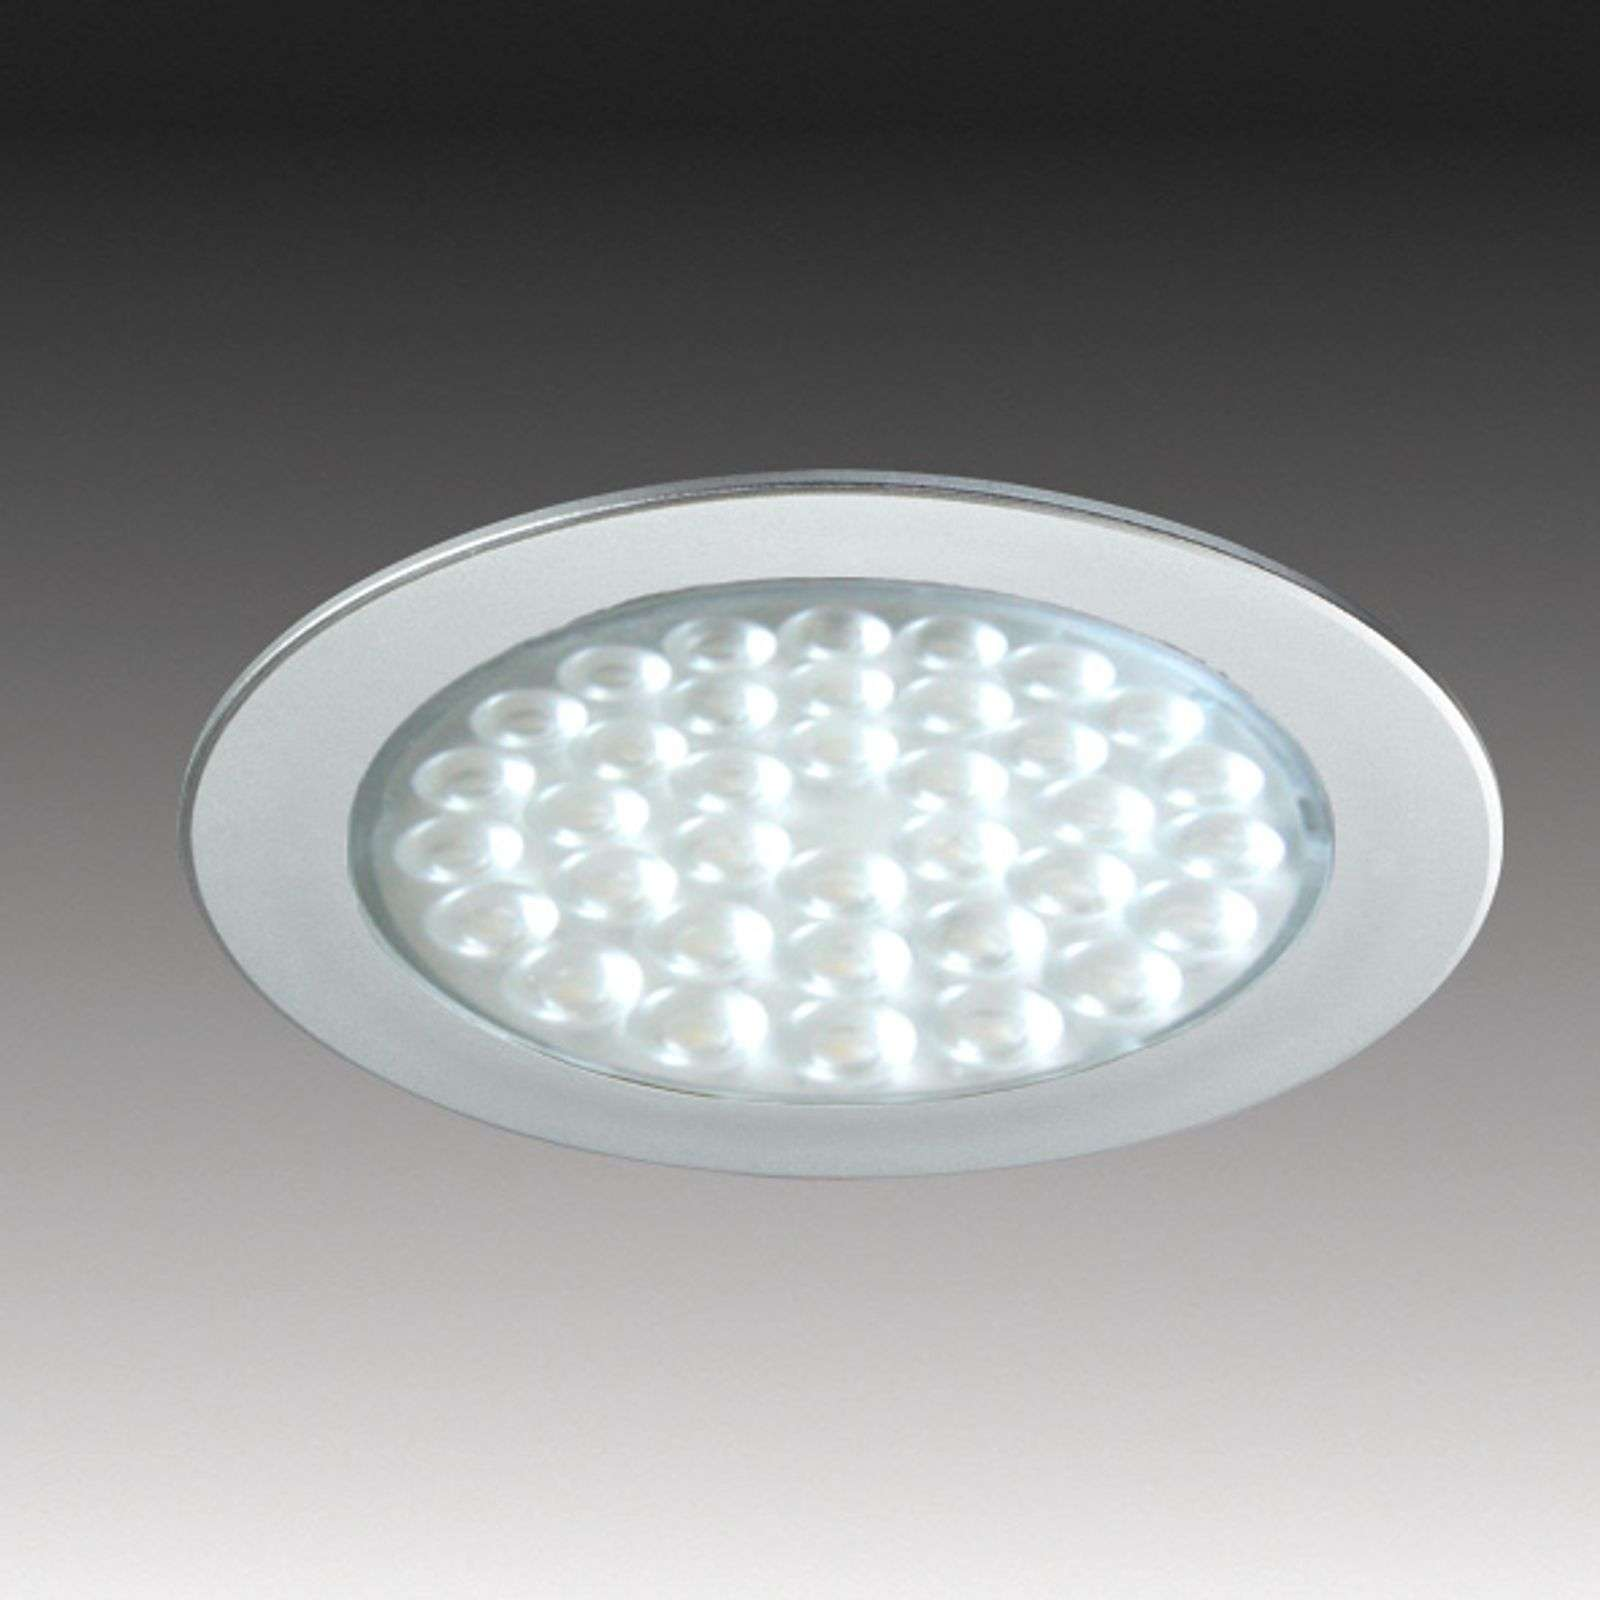 Spot encastrable R 68-LED aspect inox